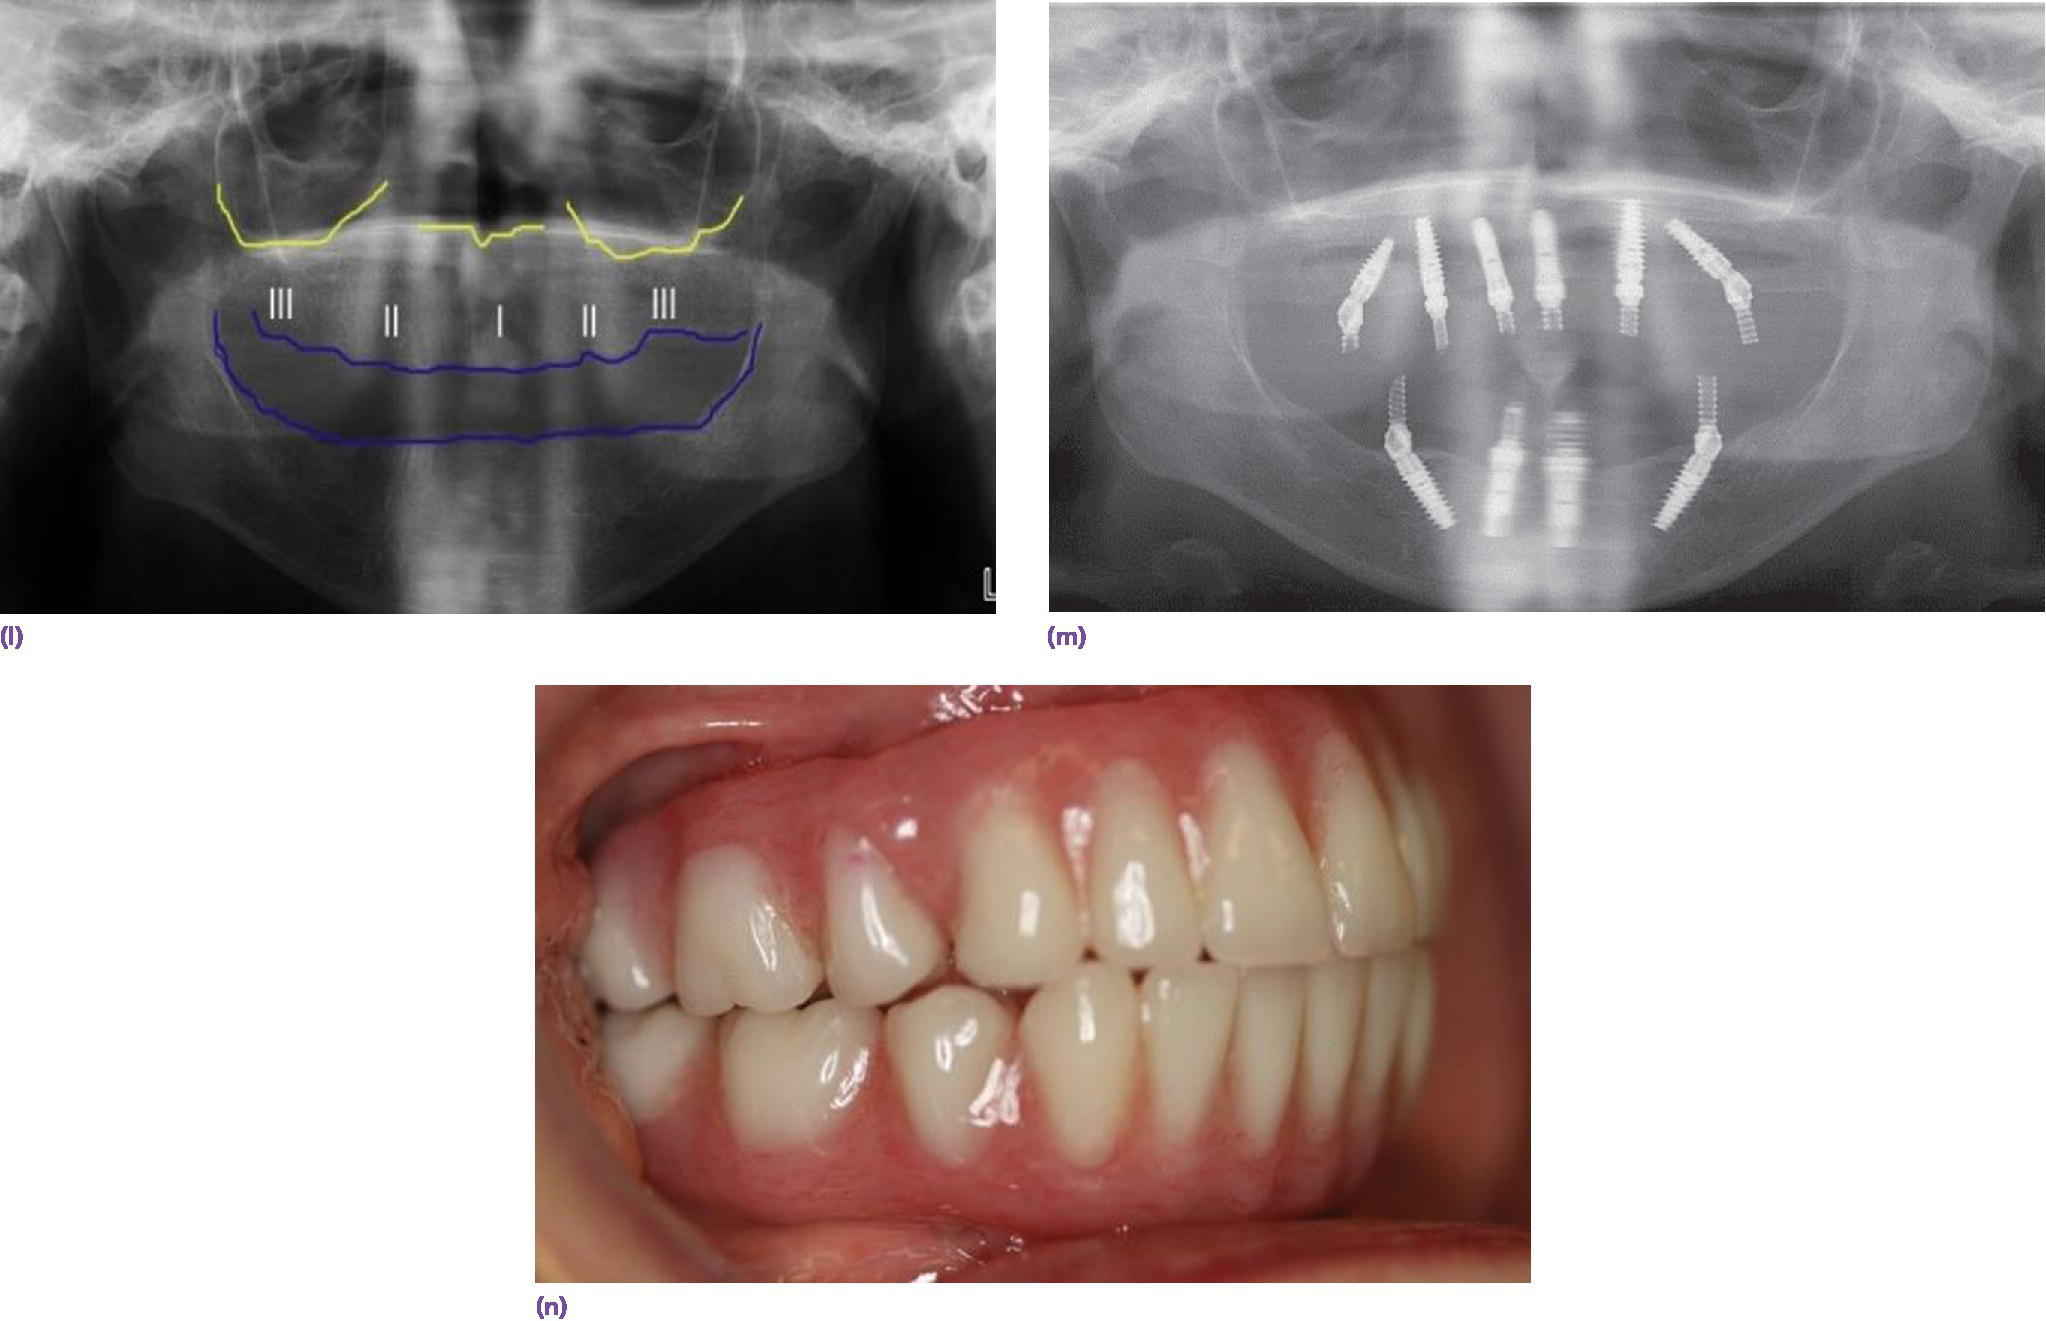 Photo displaying maxillary denture mounted on articular and mandibular denture is hand articulated to it with intaglio surface filled with putti and paperclips for mounting on articulator.